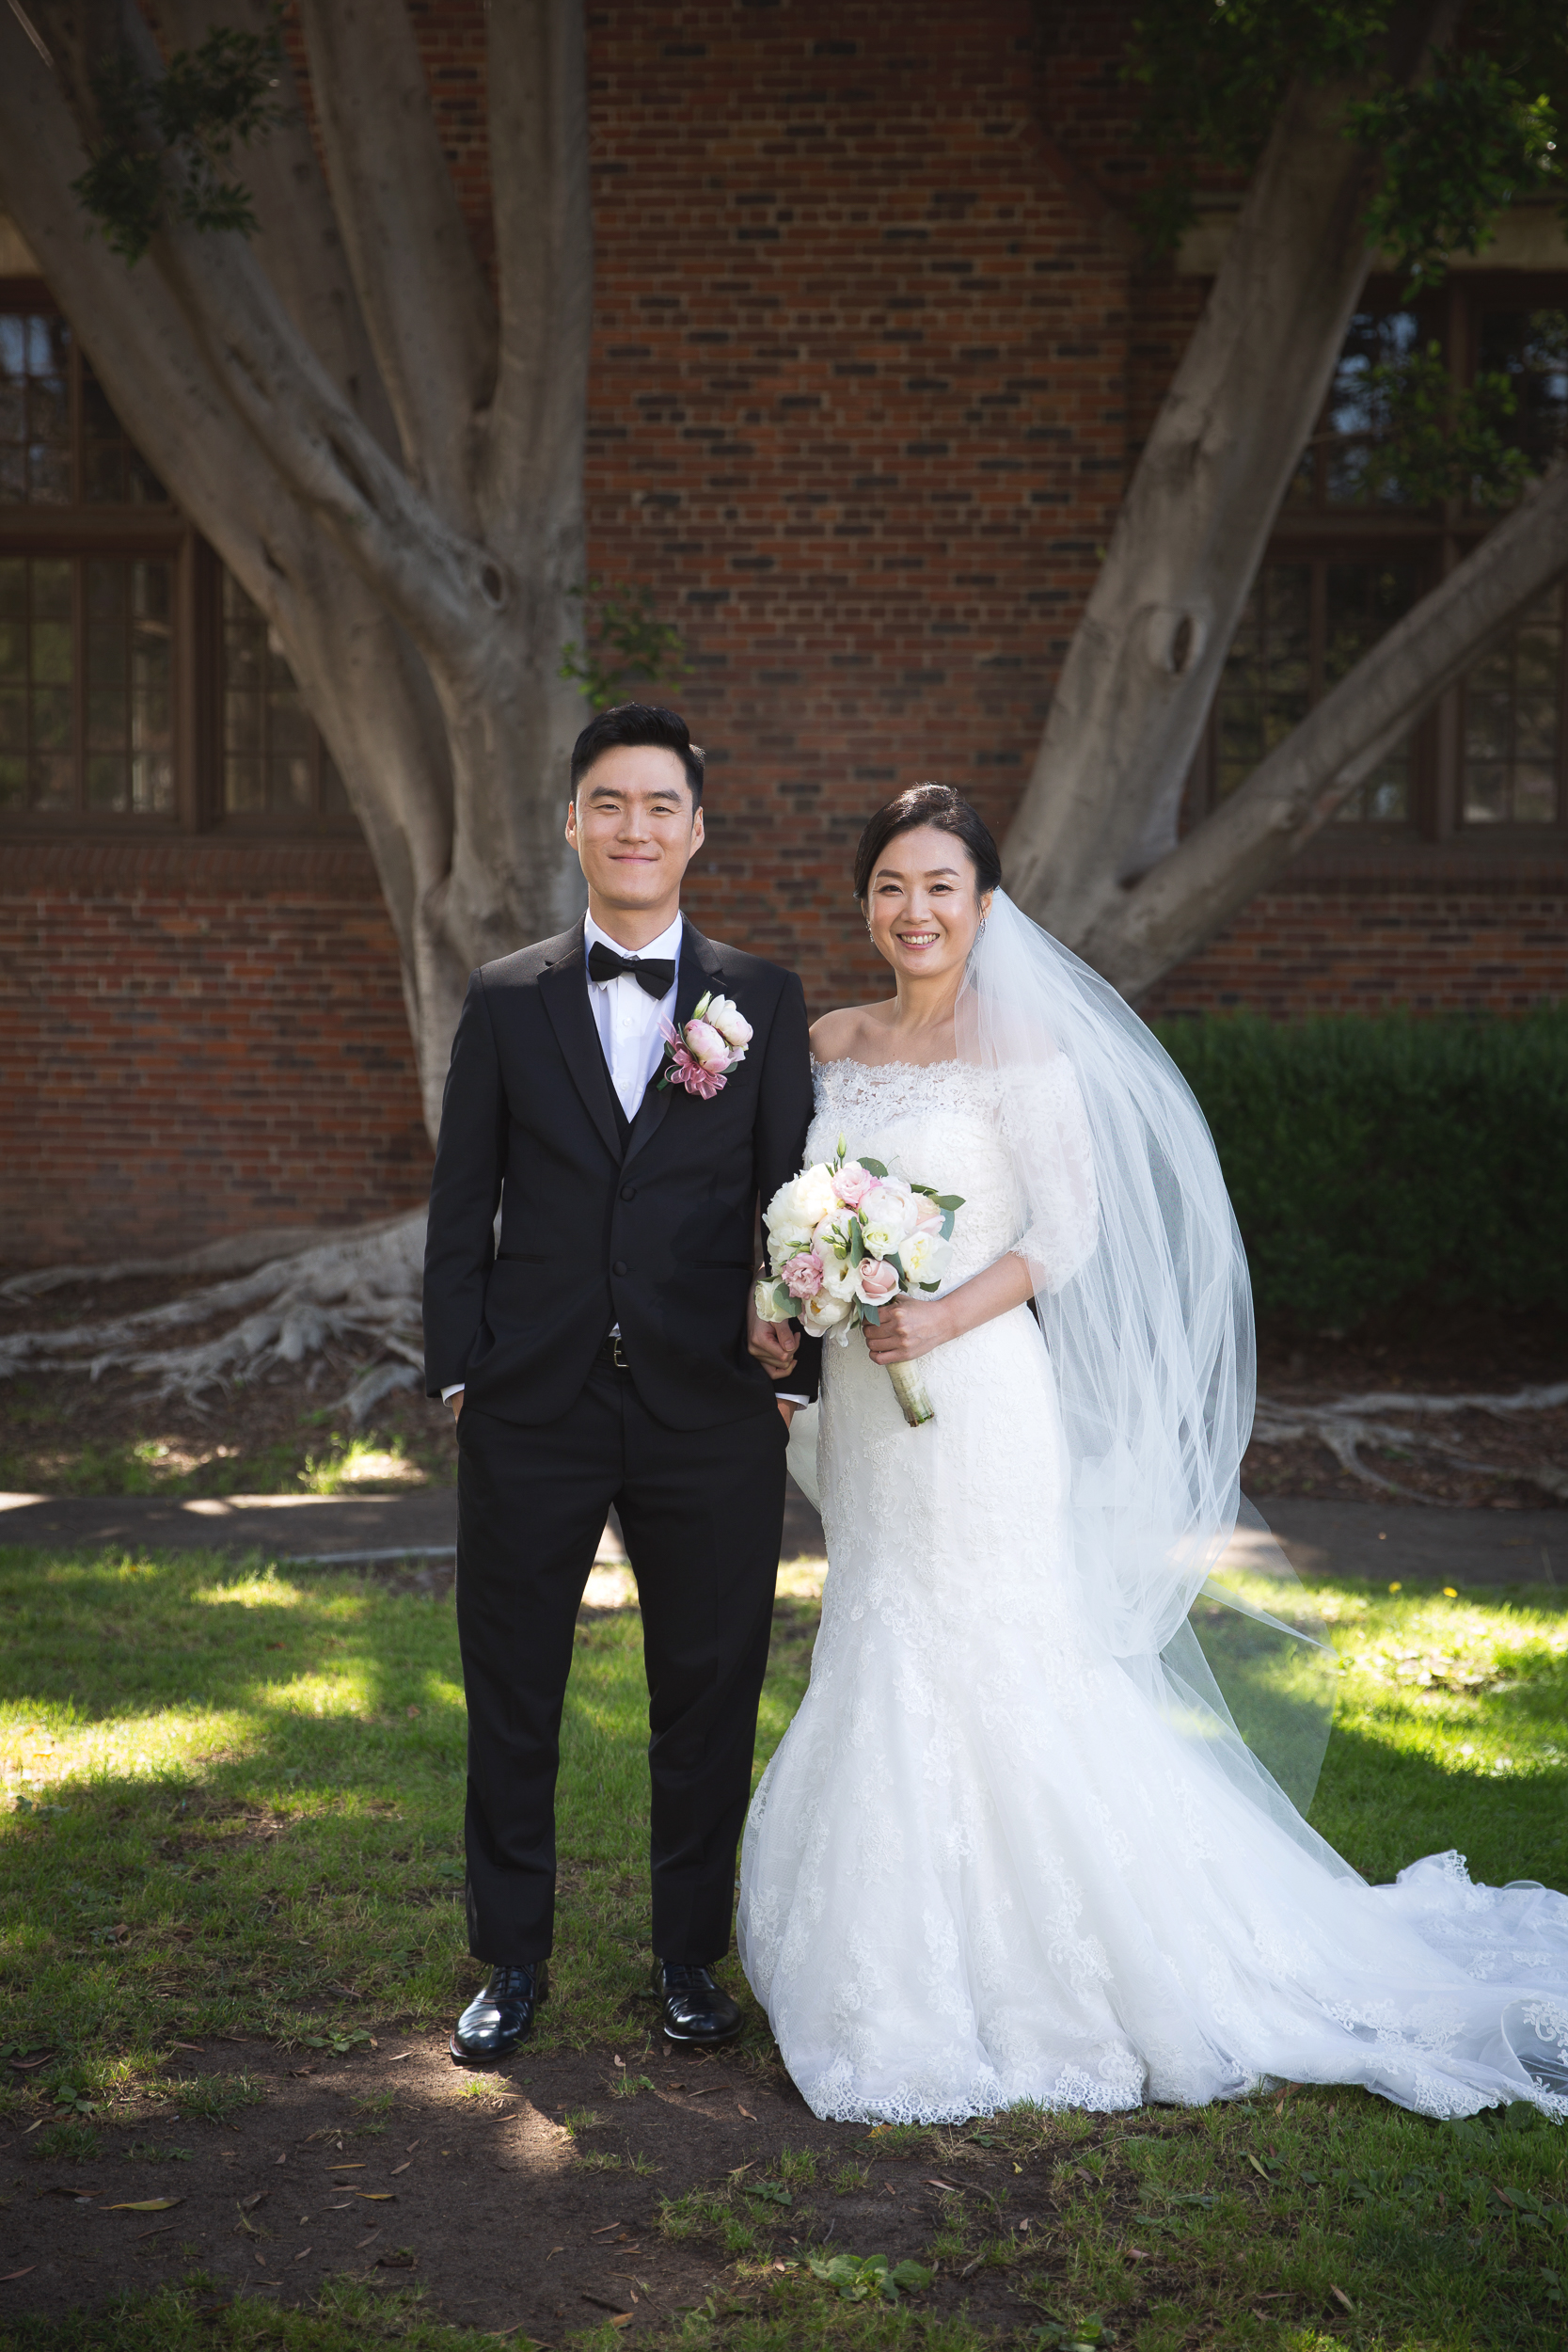 32_Ji Young Choi & Kyungmin Song Wedding